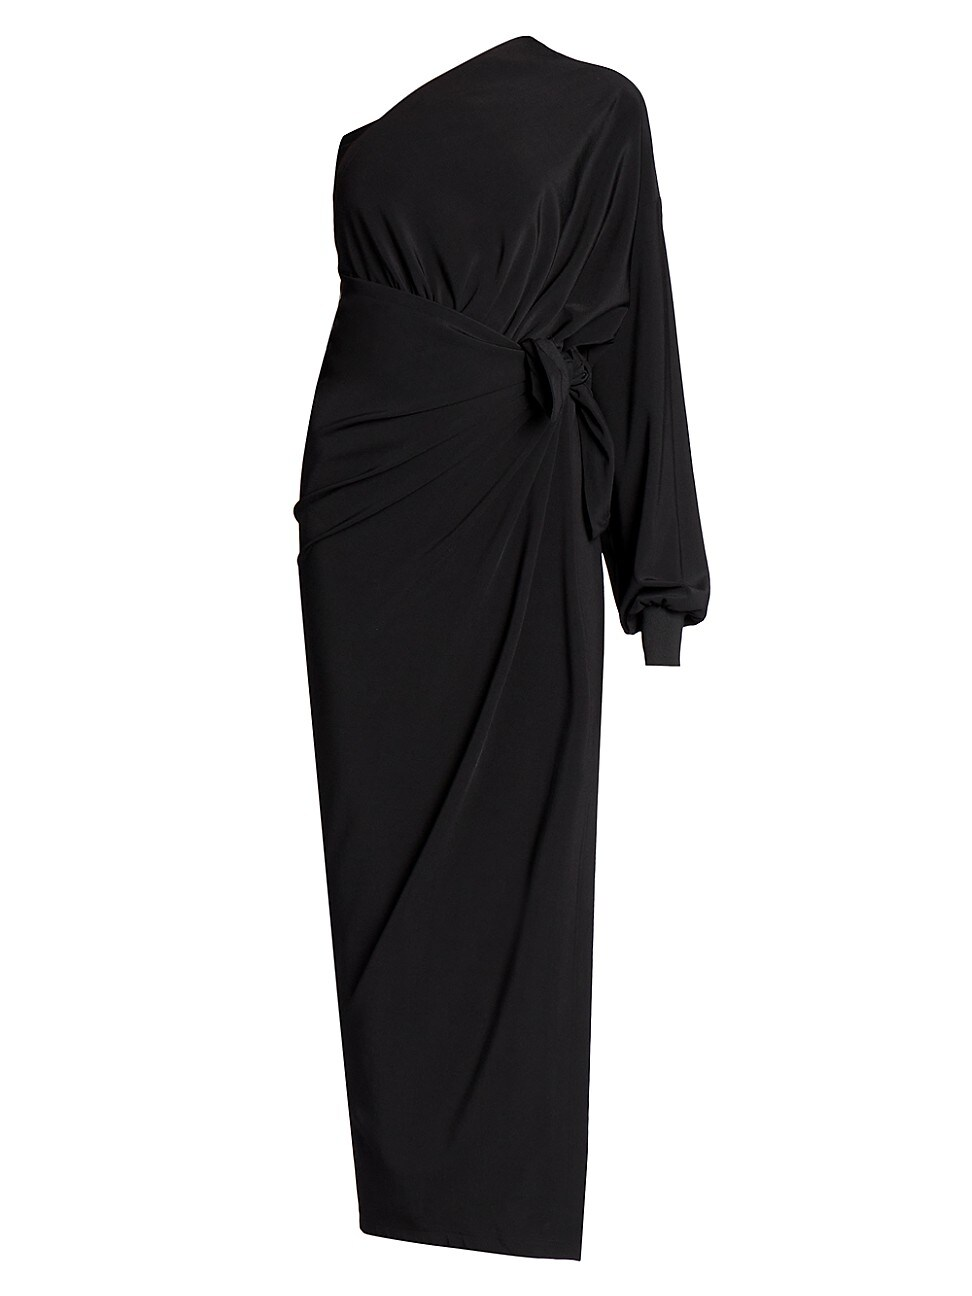 Balenciaga WOMEN'S ONE-SHOULDER KNOTTED WRAP DRESS